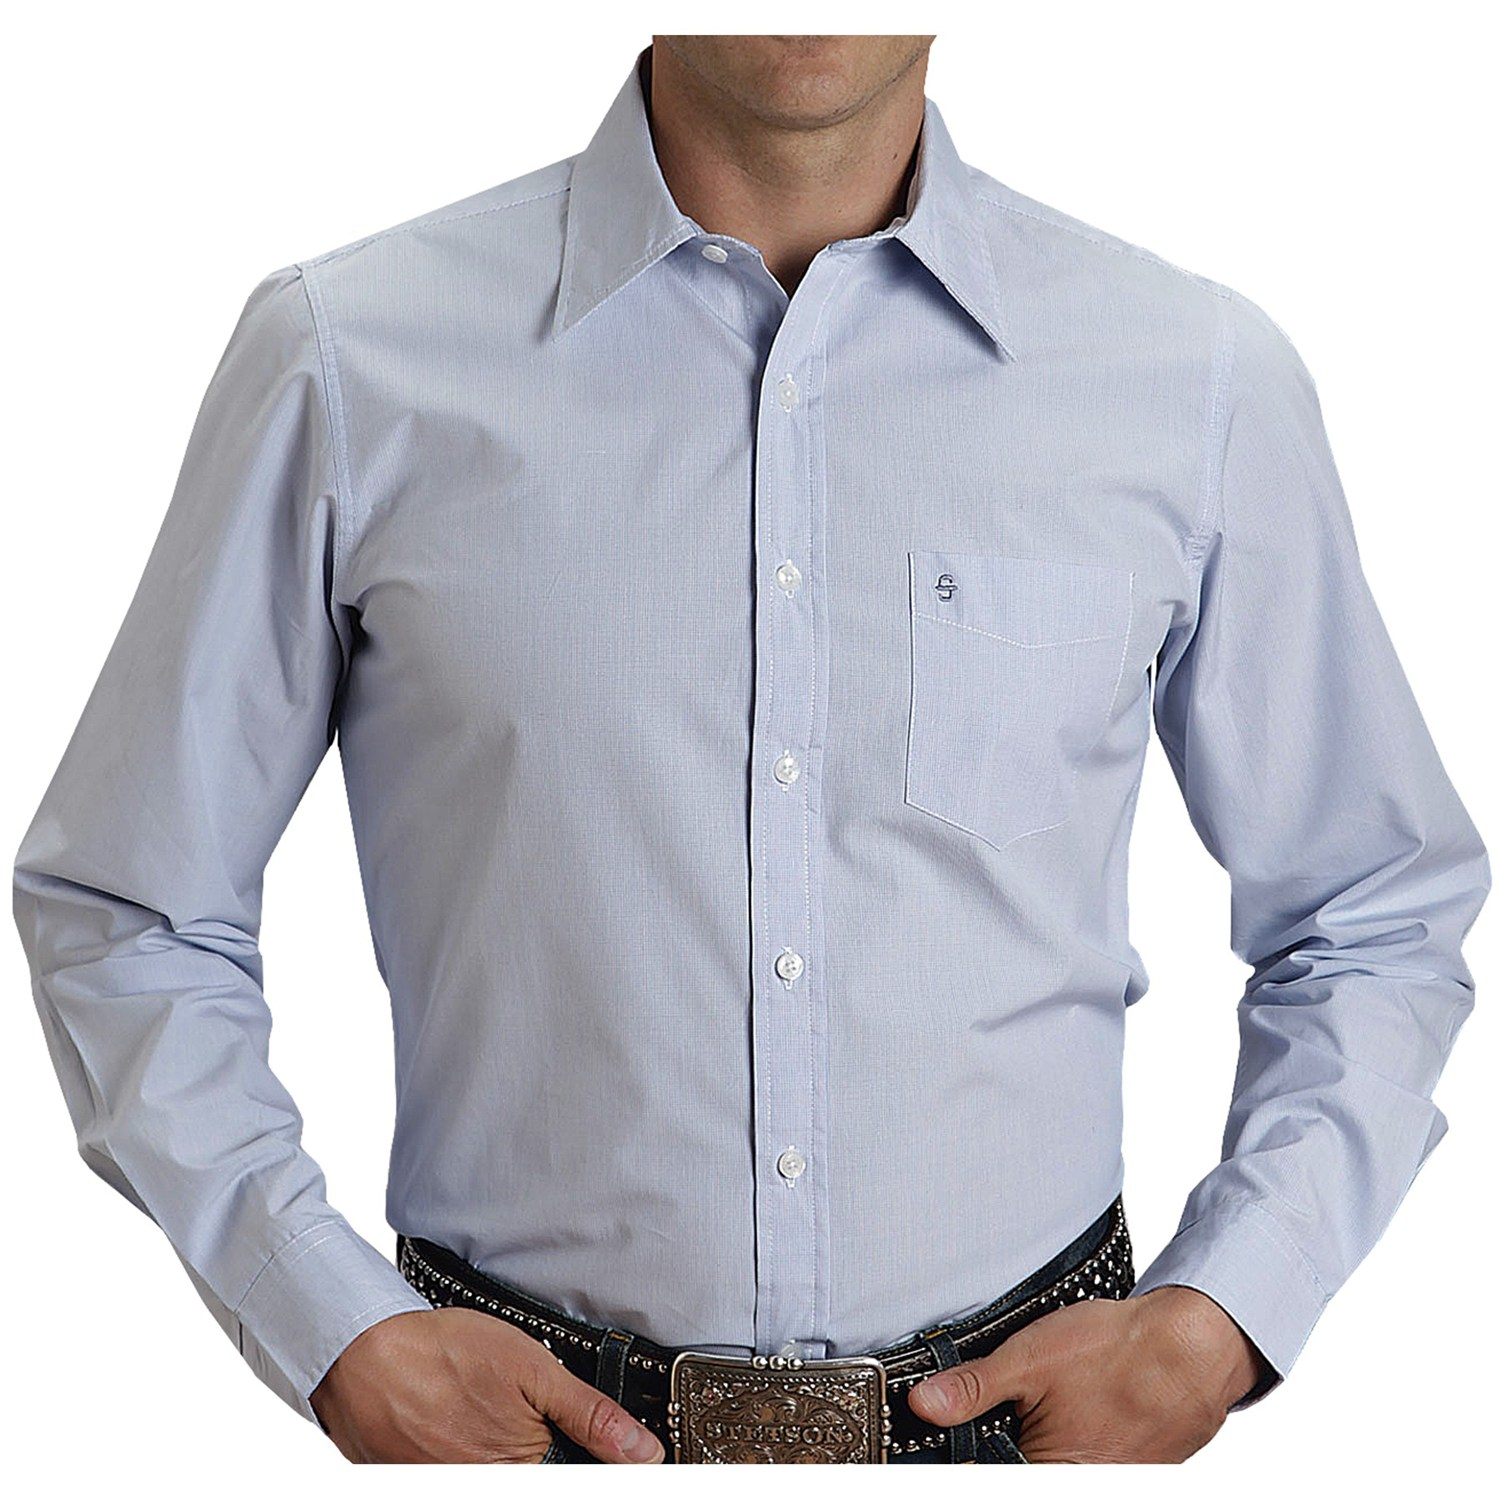 Men's Blue Button-Up Shirt